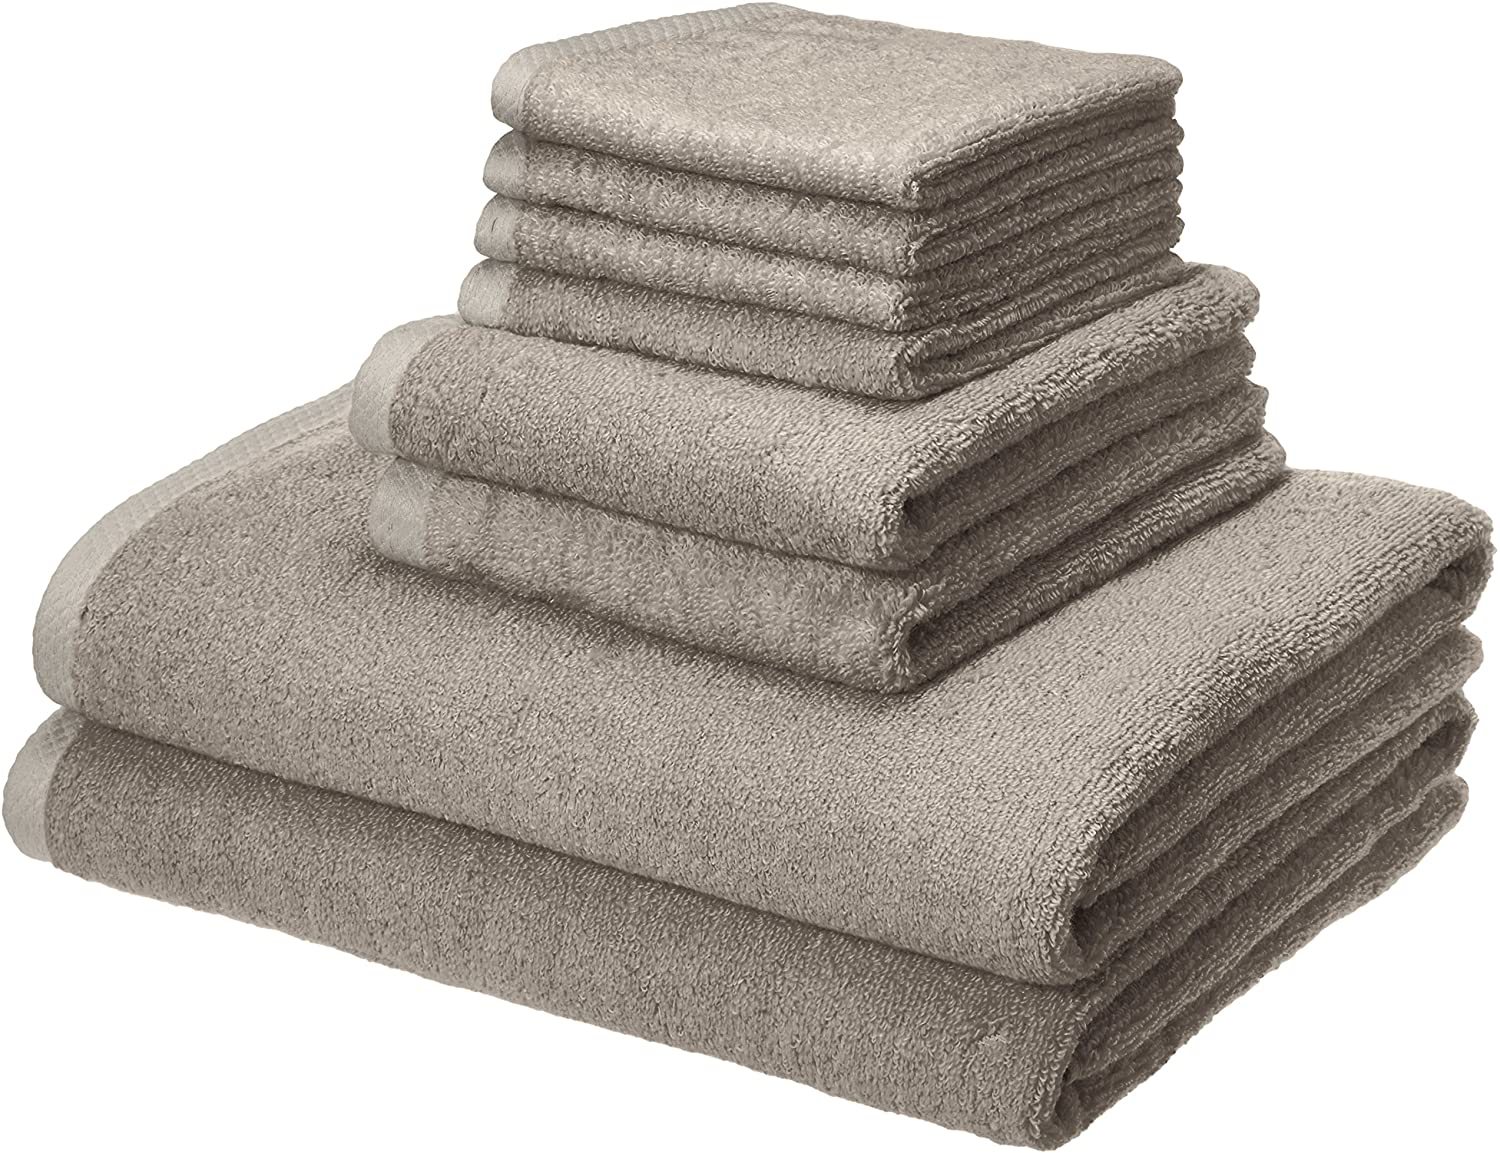 Basics Quick-Dry, Luxurious, Soft, 100% Cotton Towels, Platinum - 8-Piece Set: Home & Kitchen